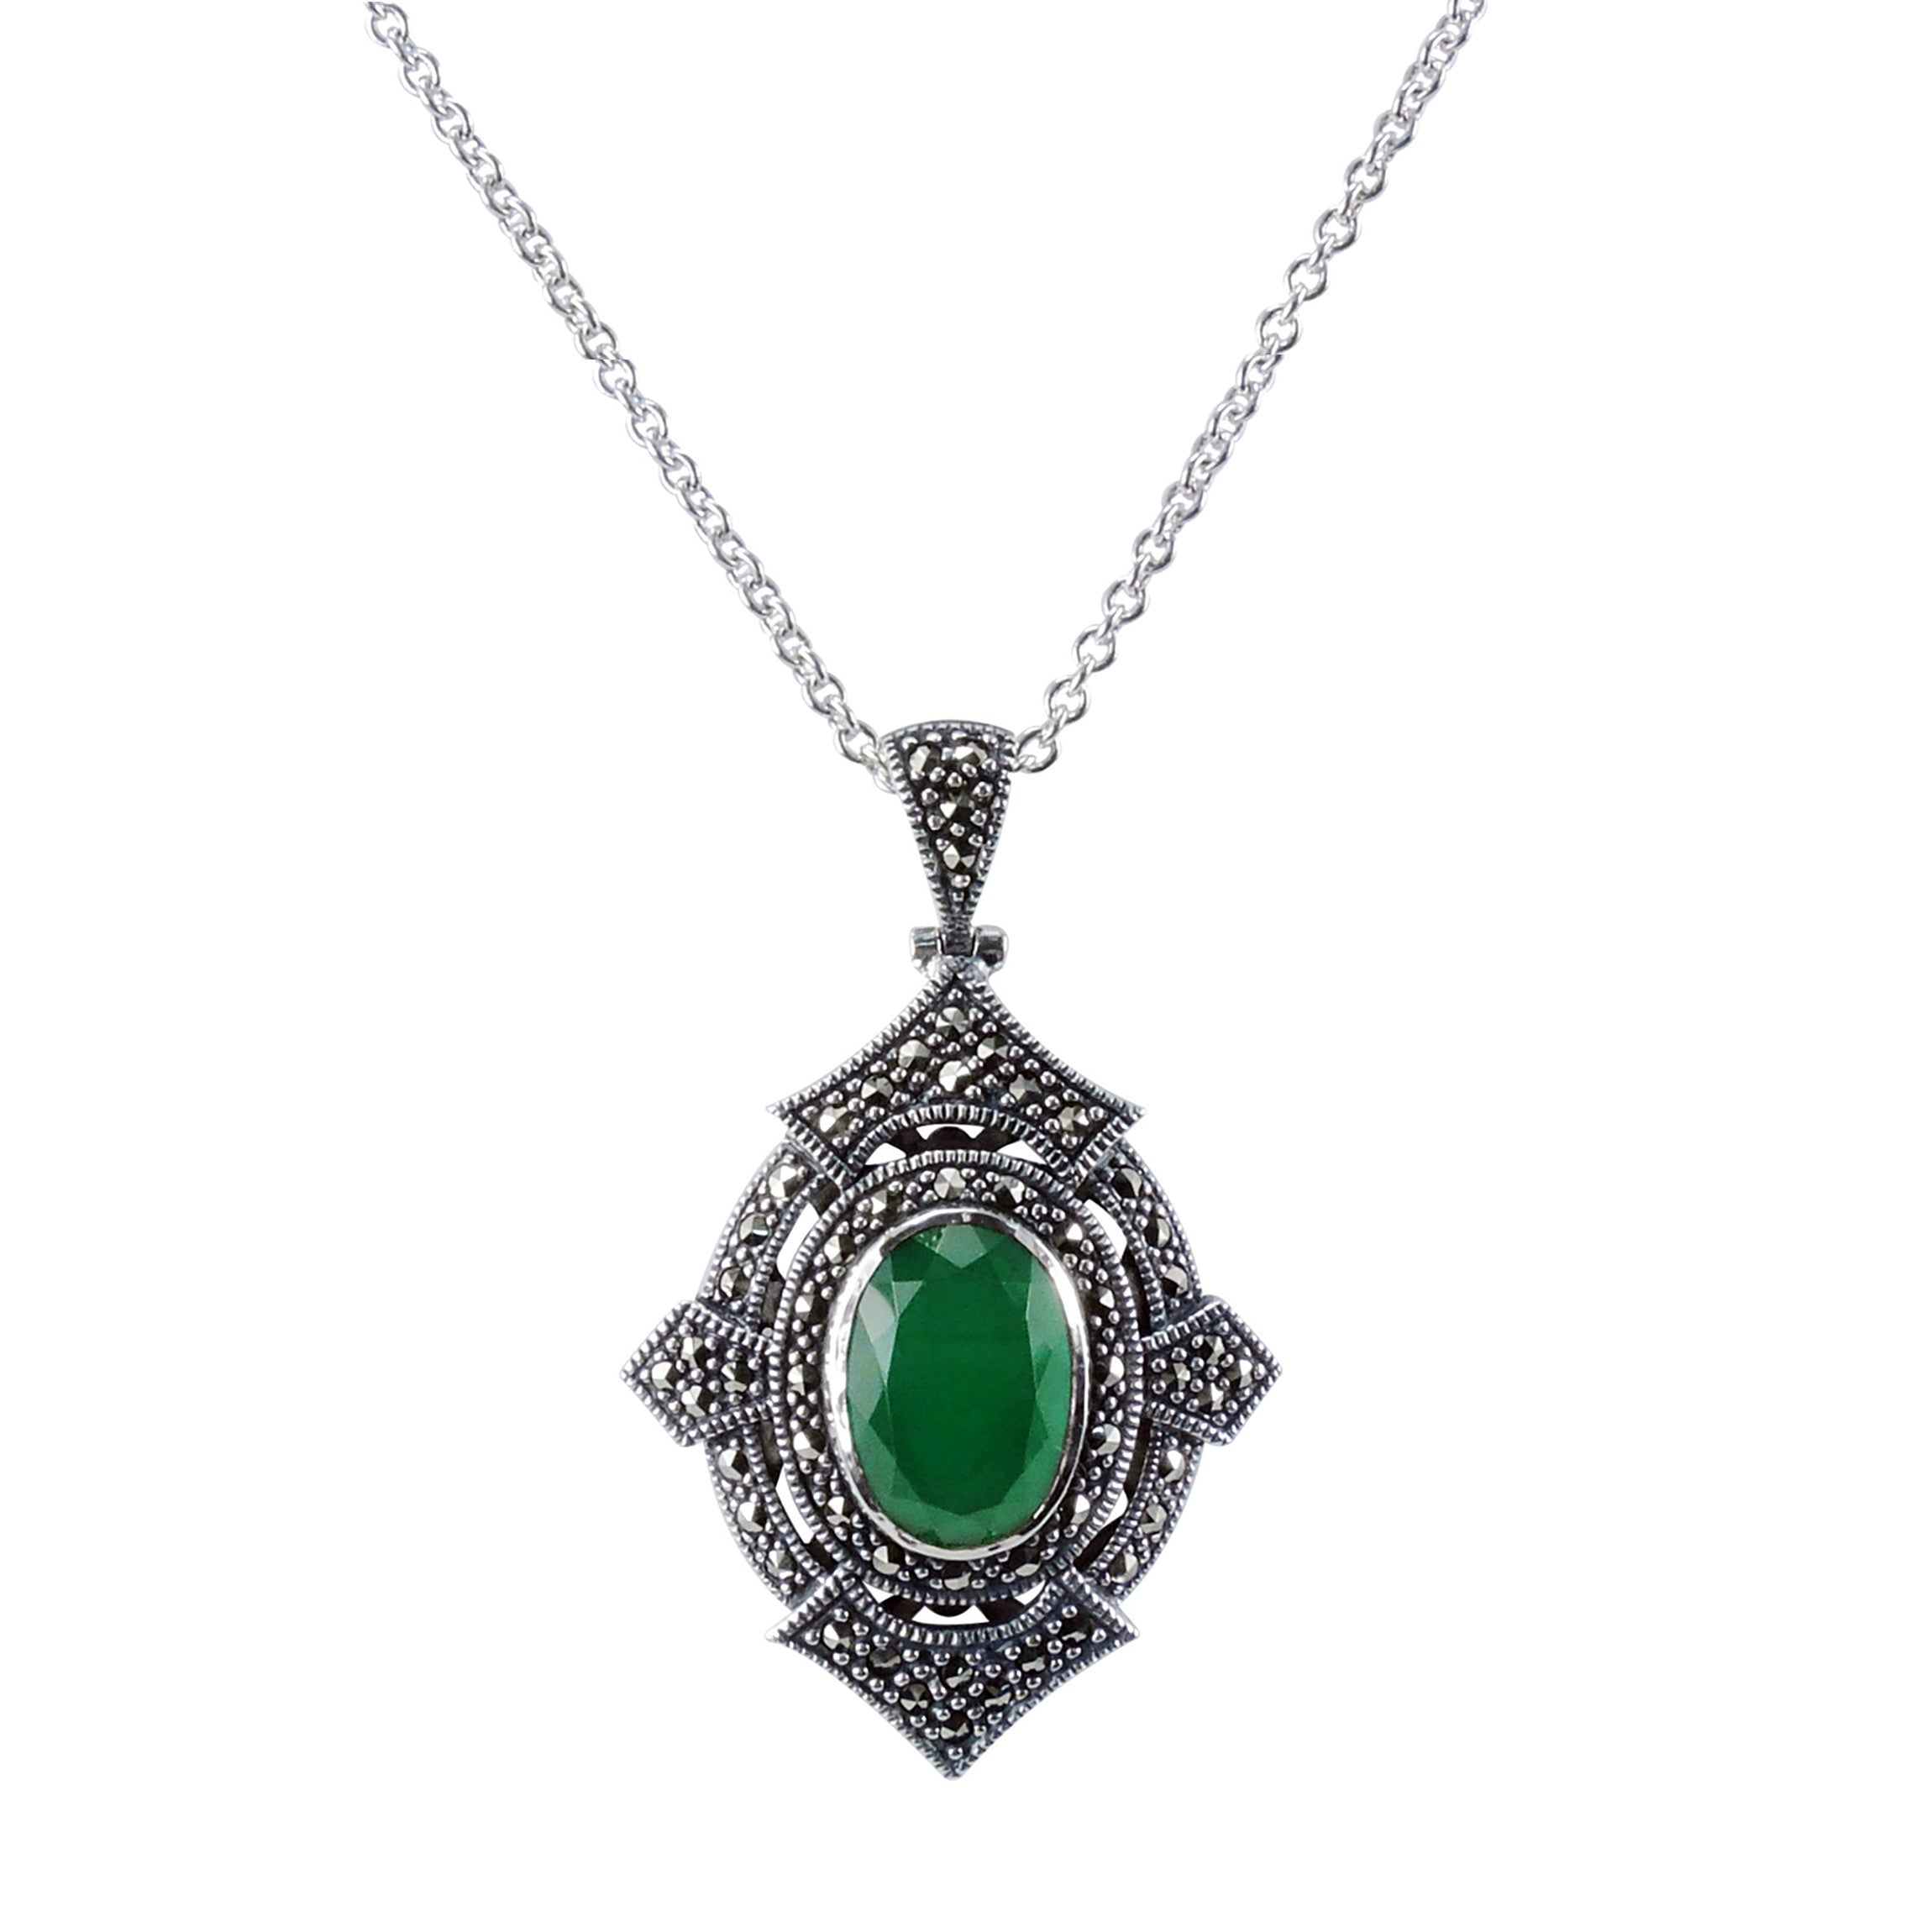 Green Agate and Marcasite Pendant, Sterling Silver